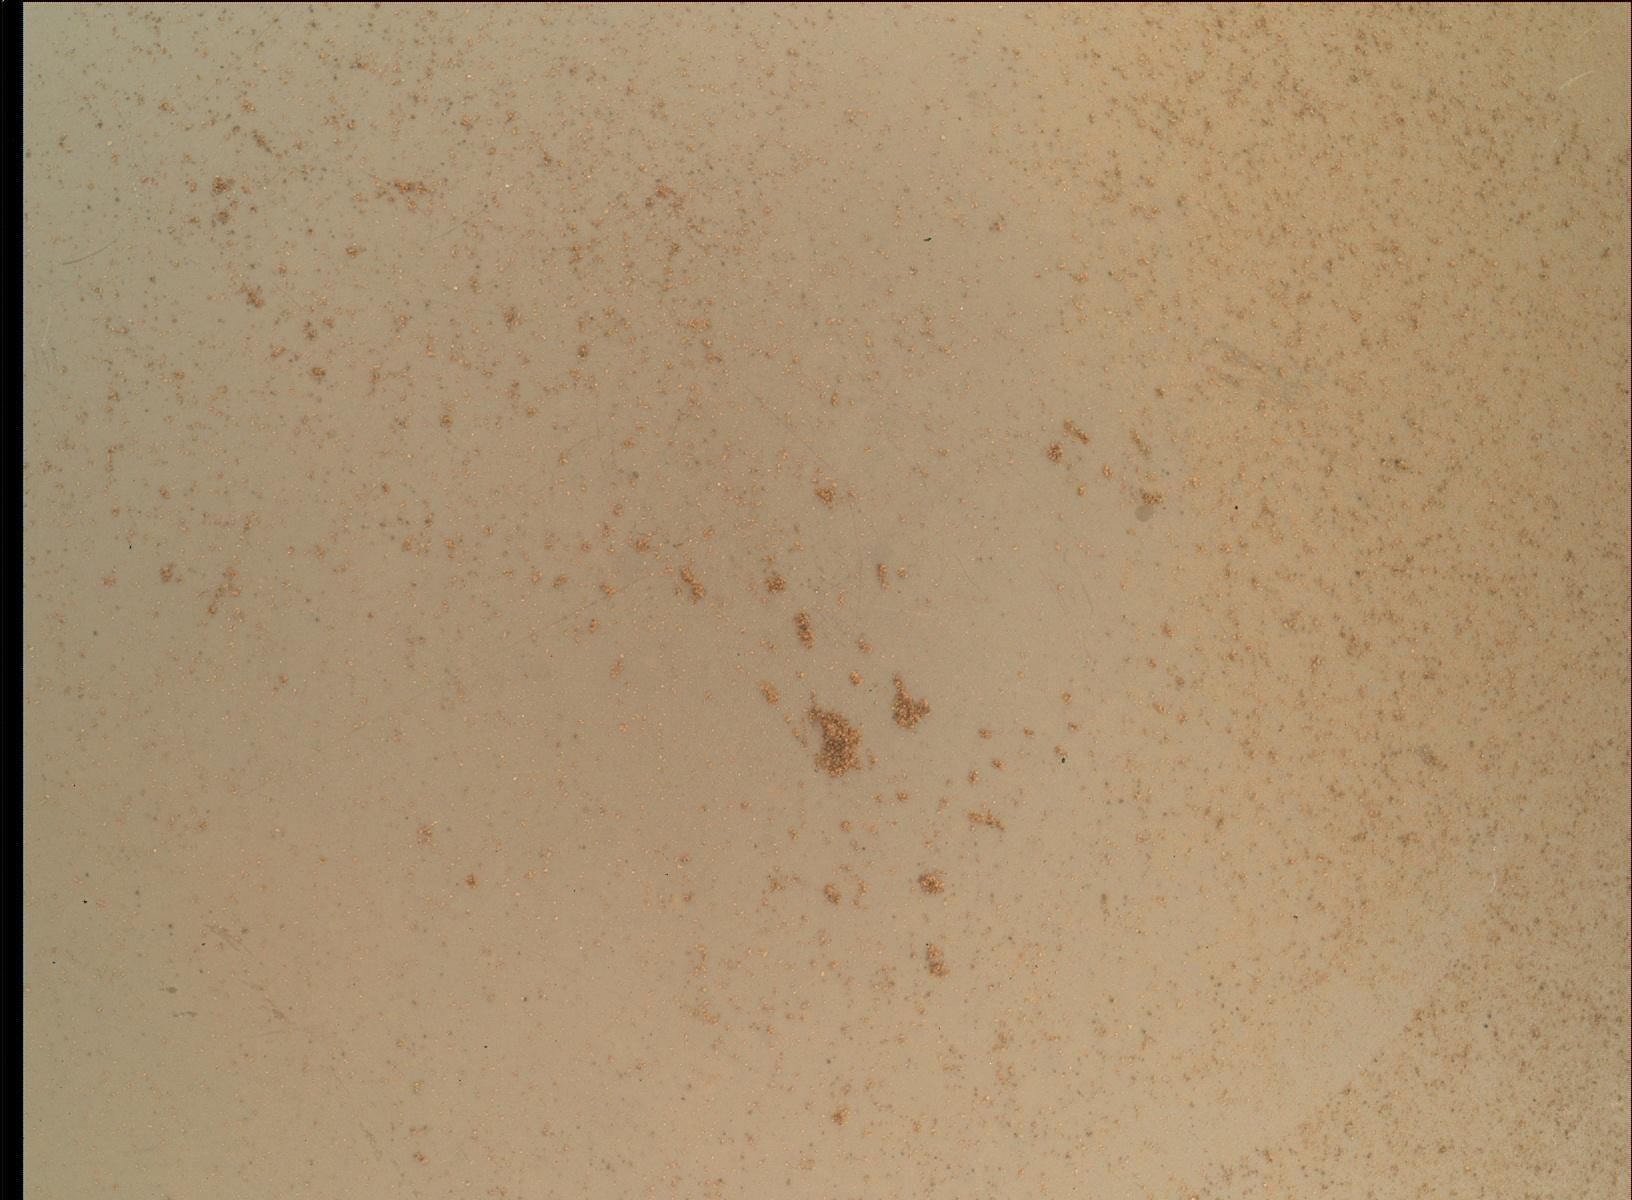 Nasa's Mars rover Curiosity acquired this image using its Mars Hand Lens Imager (MAHLI) on Sol 93